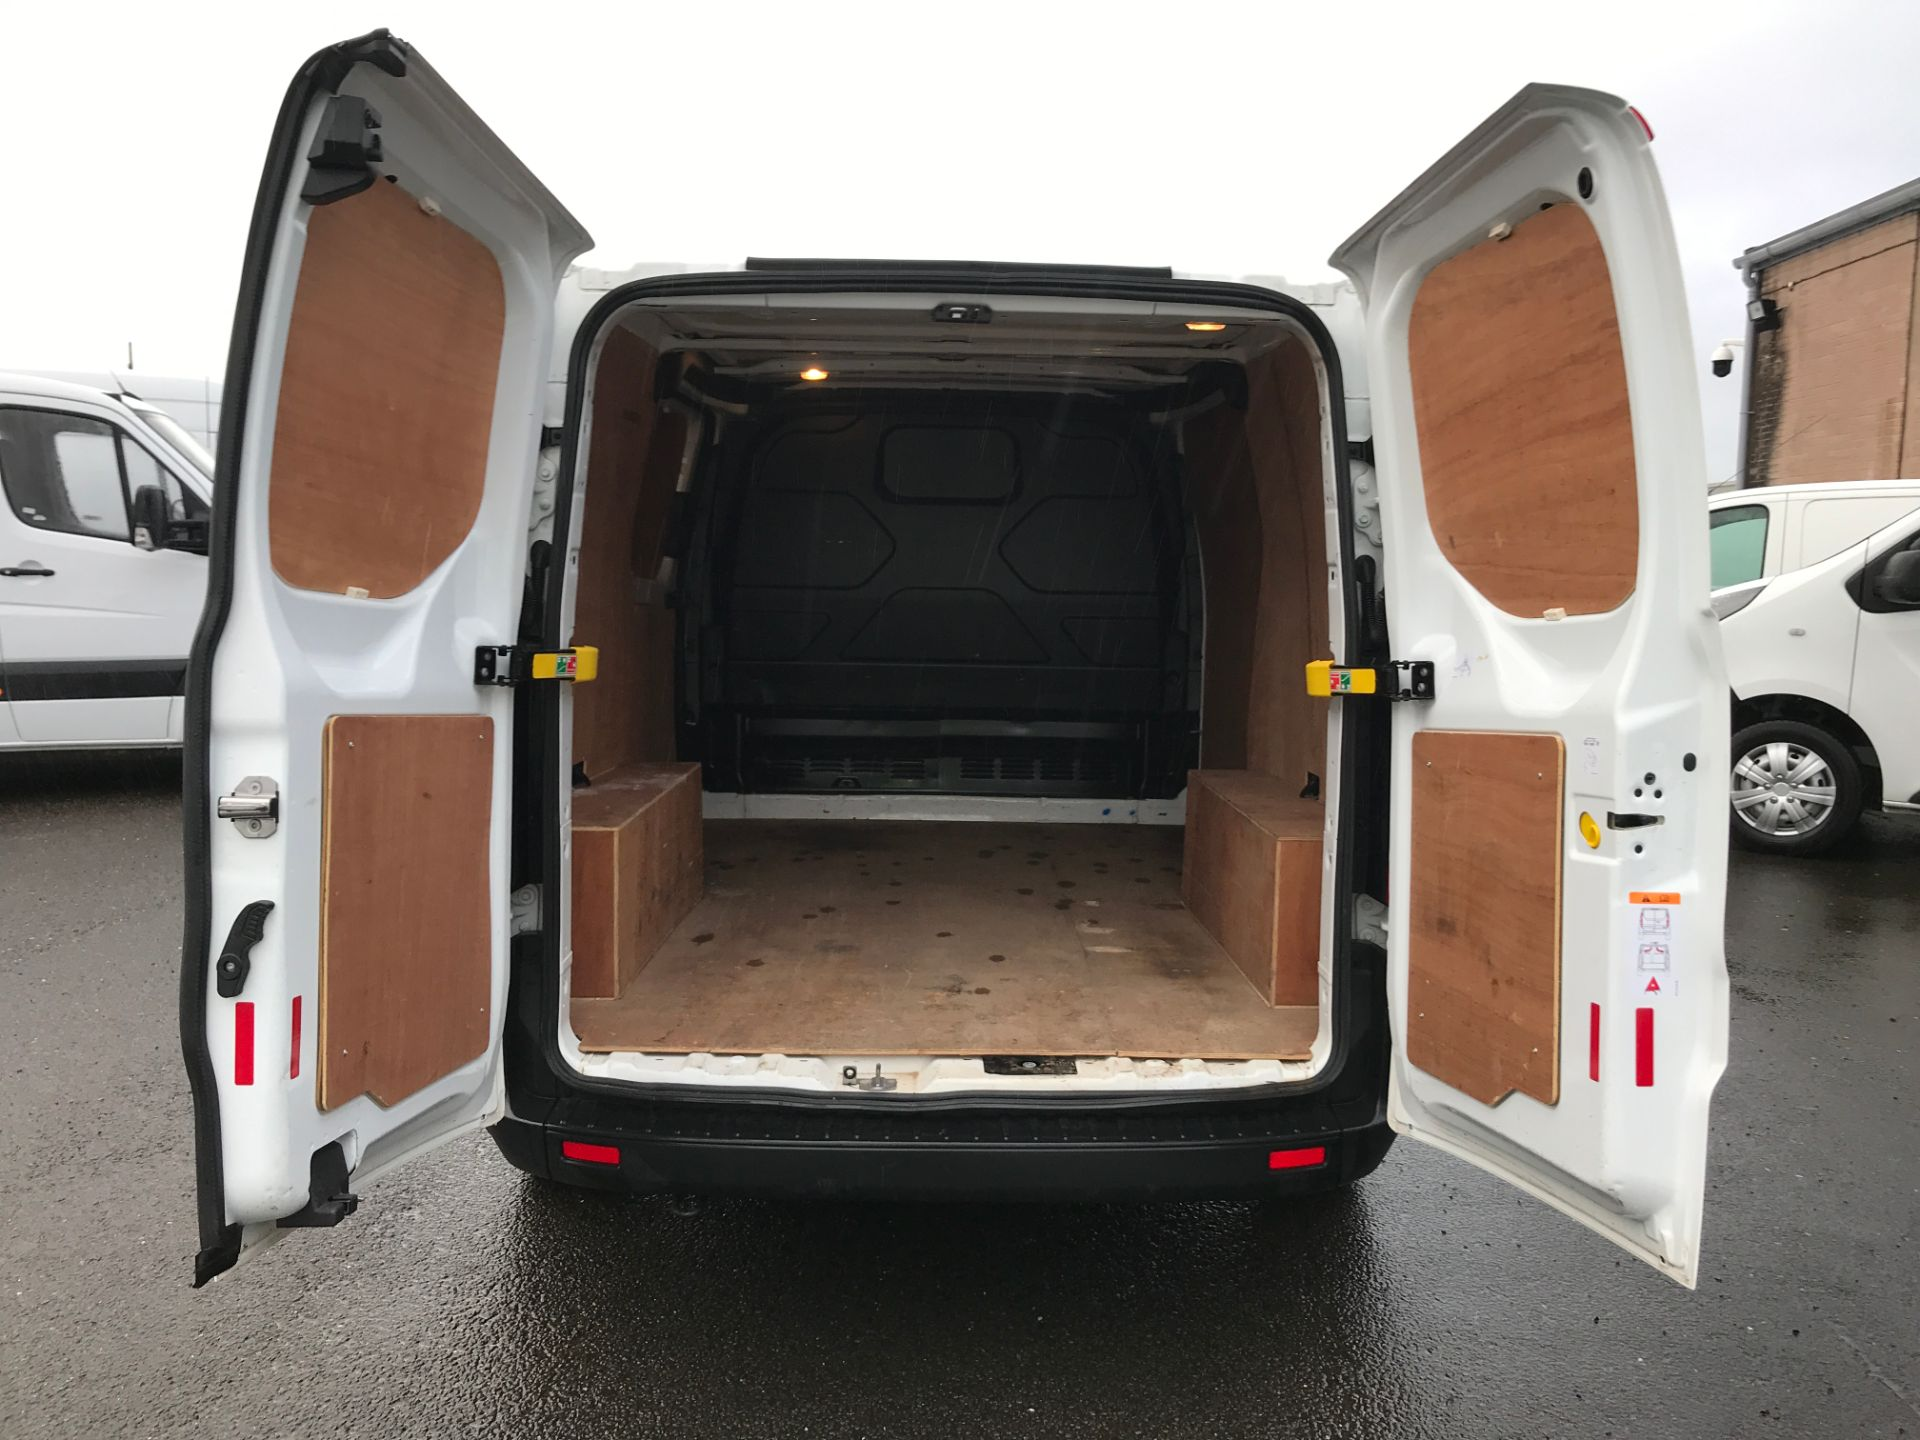 2018 Ford Transit Custom 300 L1 2.0TDCI 105PS LOW ROOF EURO 6 (FP18AZT) Image 7